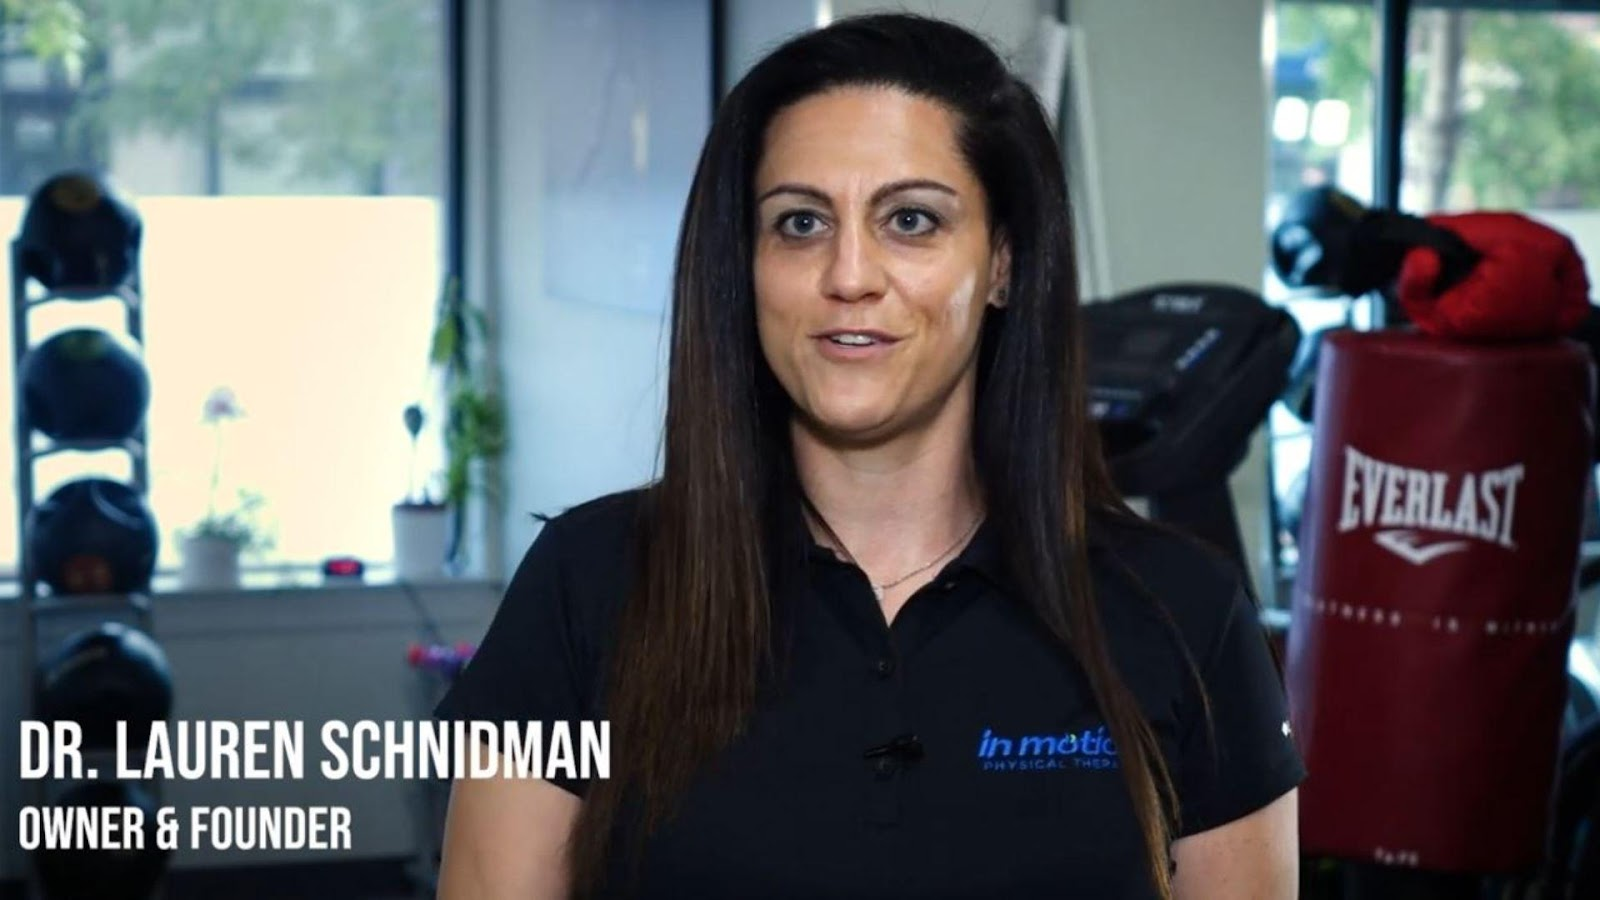 Dr. Lauren Schnidman of In Motion Physical Therapy Chicago